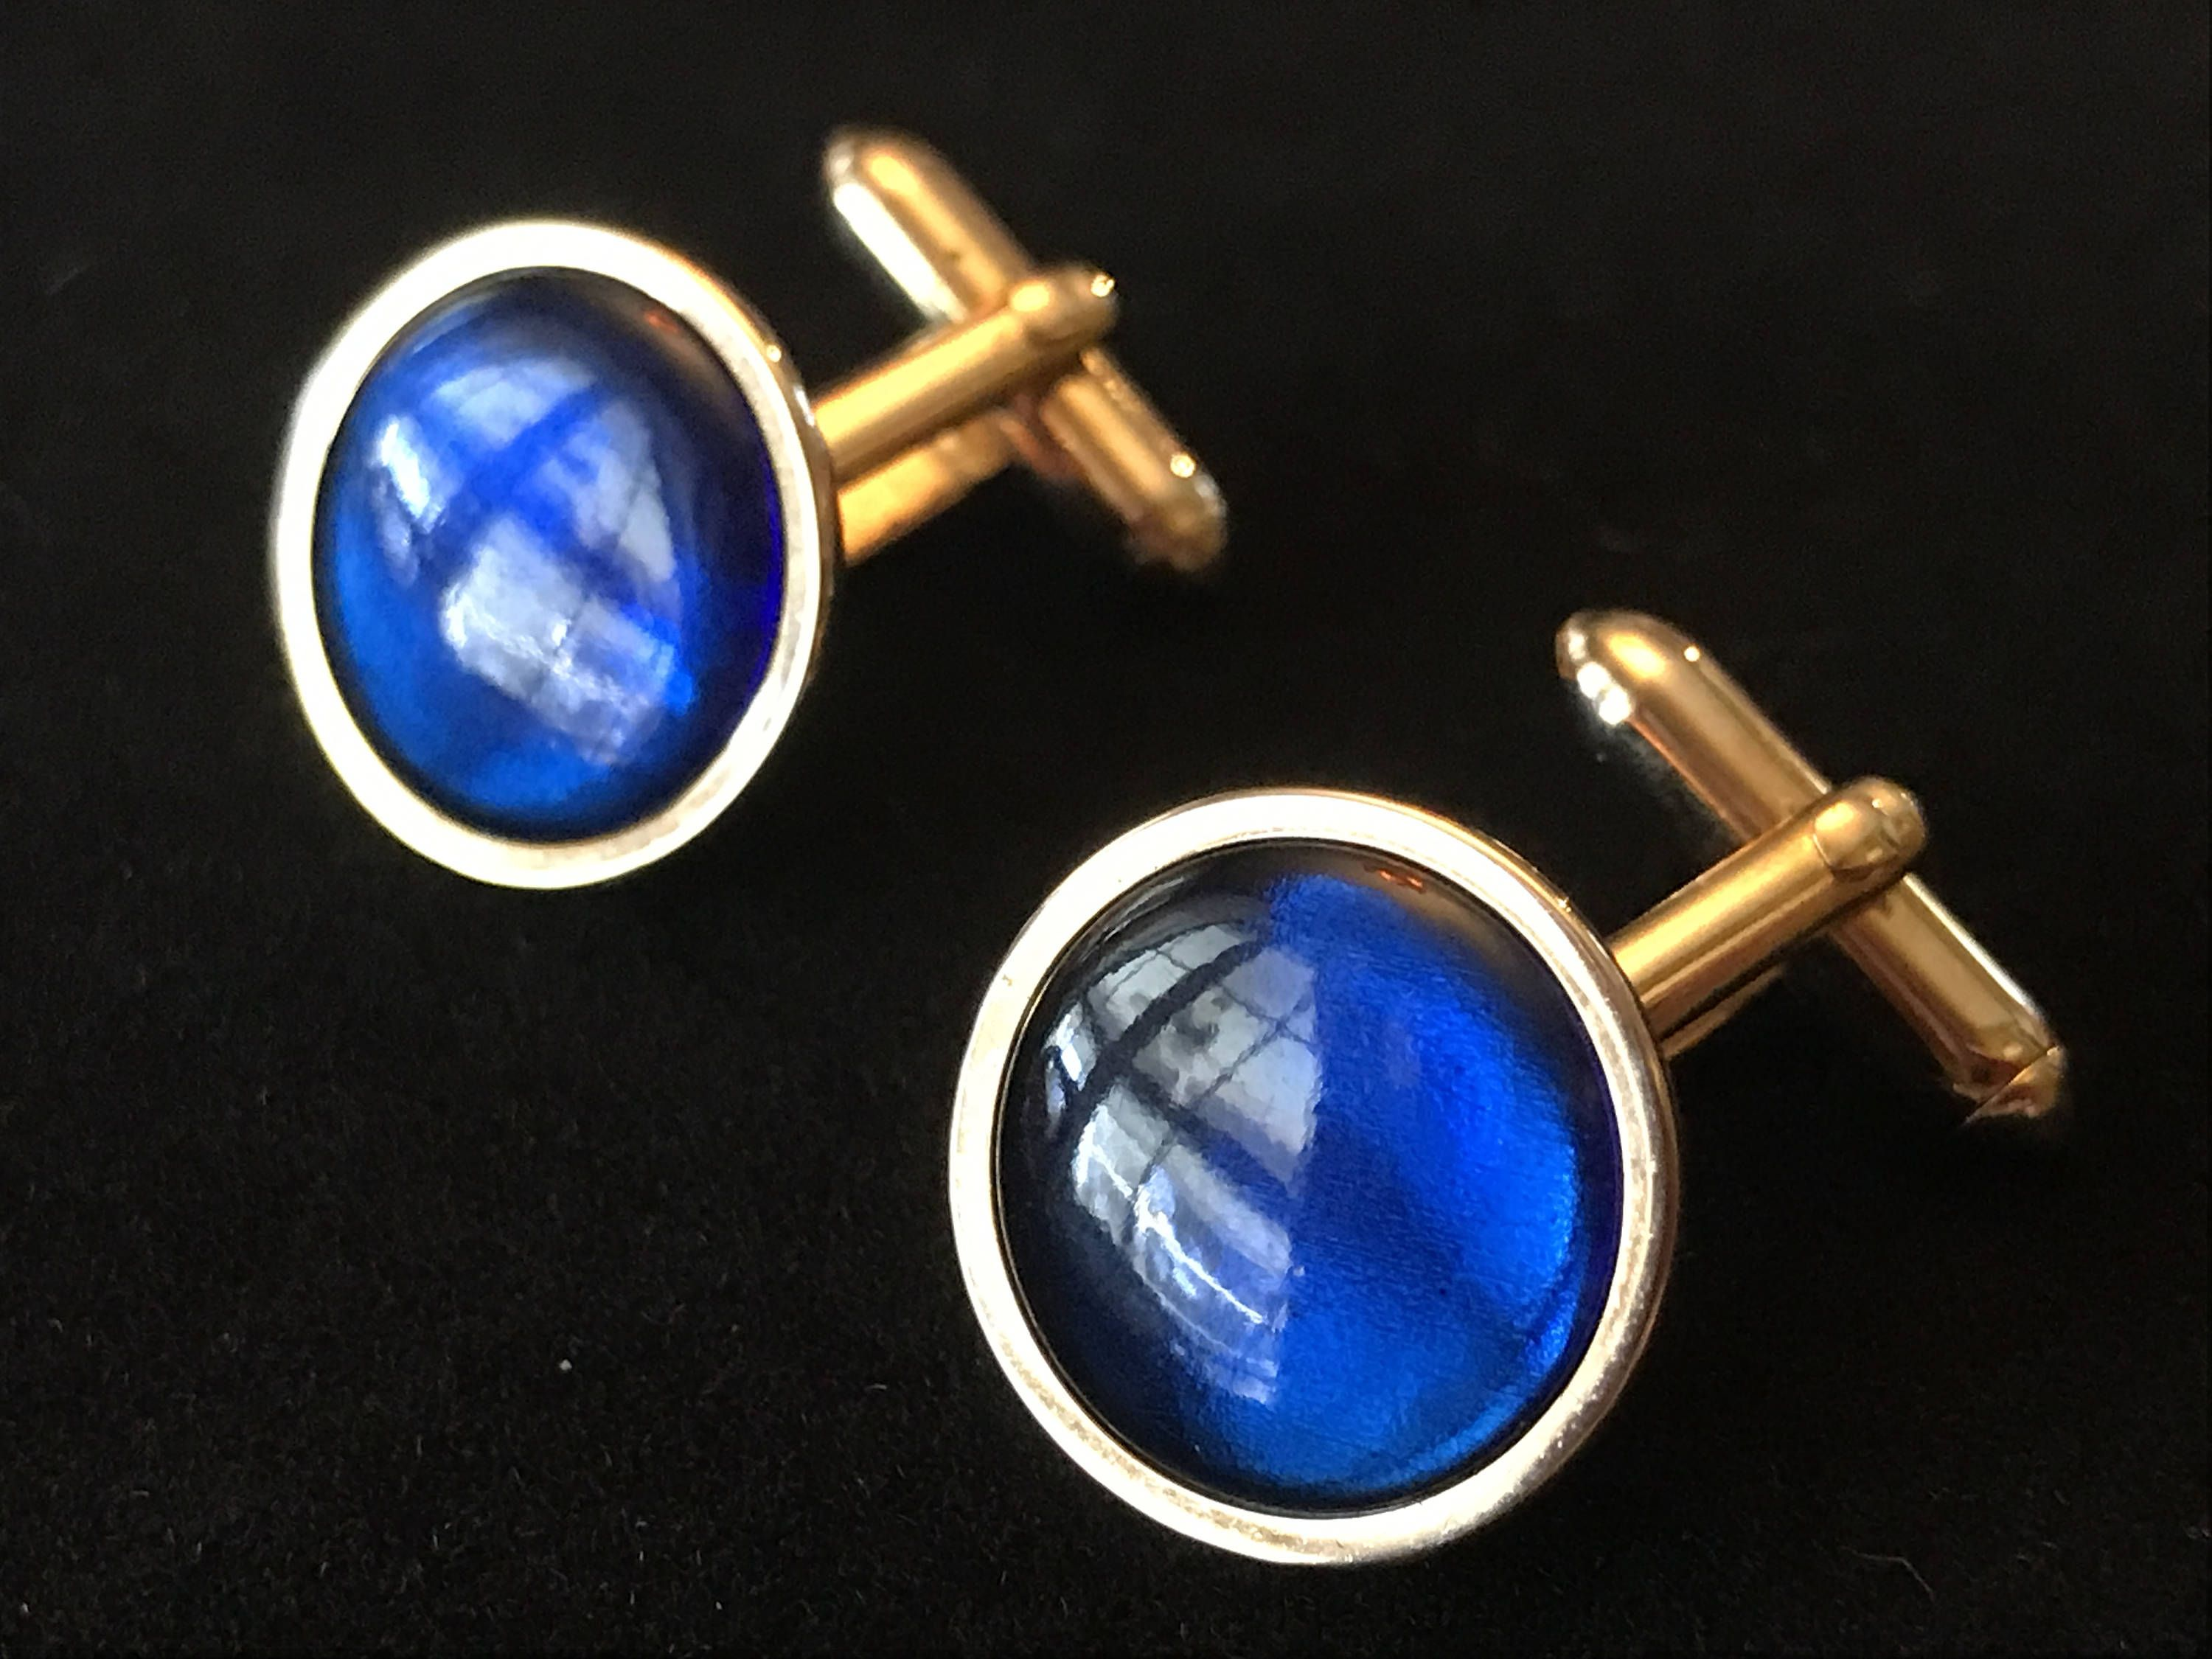 5621812469cf Vintage Swank Cobalt Blue and Silver Tone Cufflinks/Swank Cufflinks/Mid  Century Blue and Silver Cufflinks by BazemoreVault on Etsy